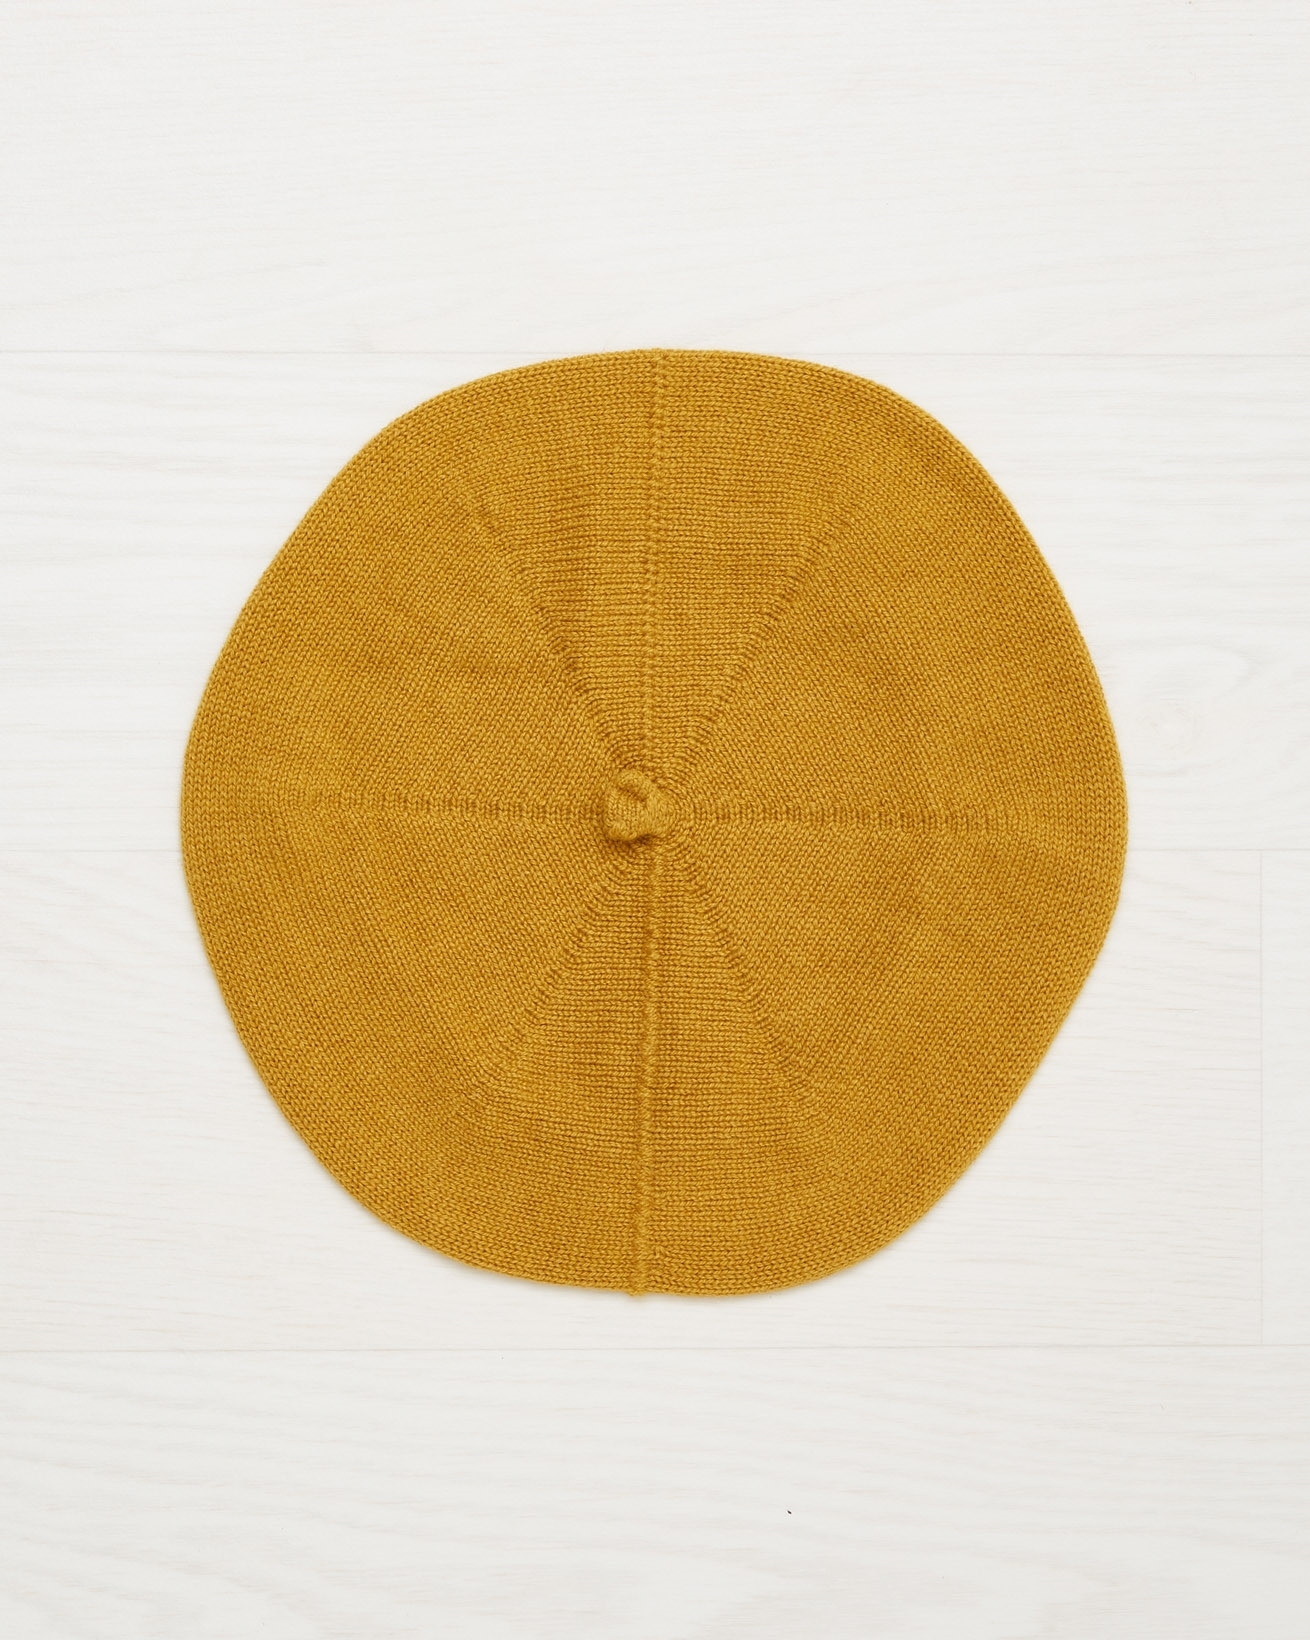 Cashmere Beret - Mustard - One Size - 2506